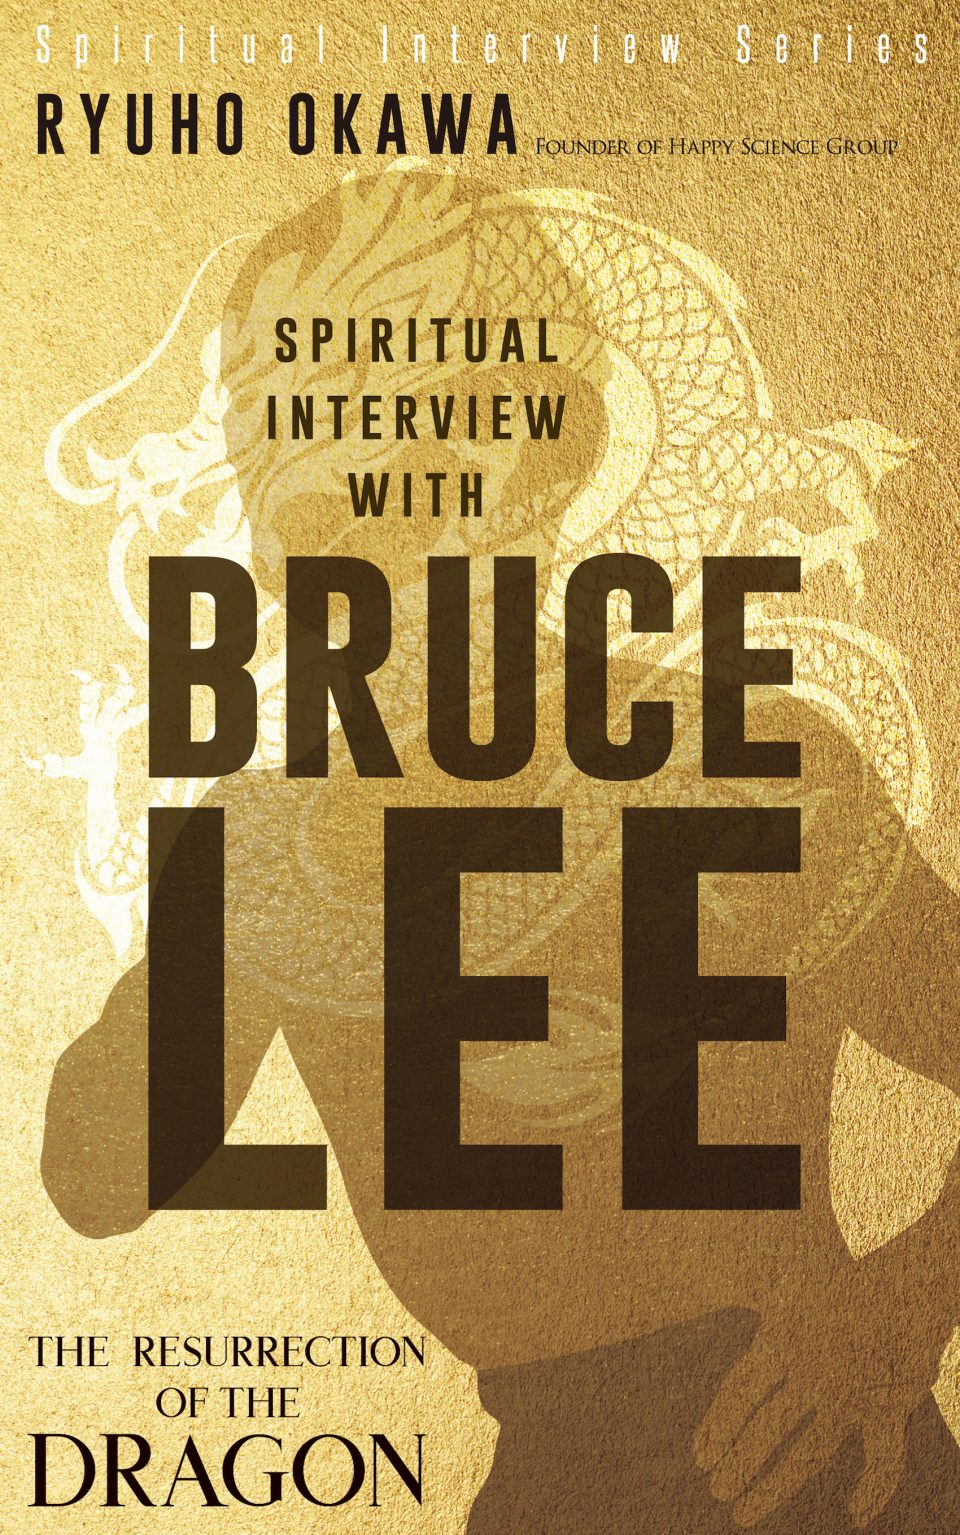 Spiritual Interview with Bruce Lee: The Resurrection of the Dragon is out now!